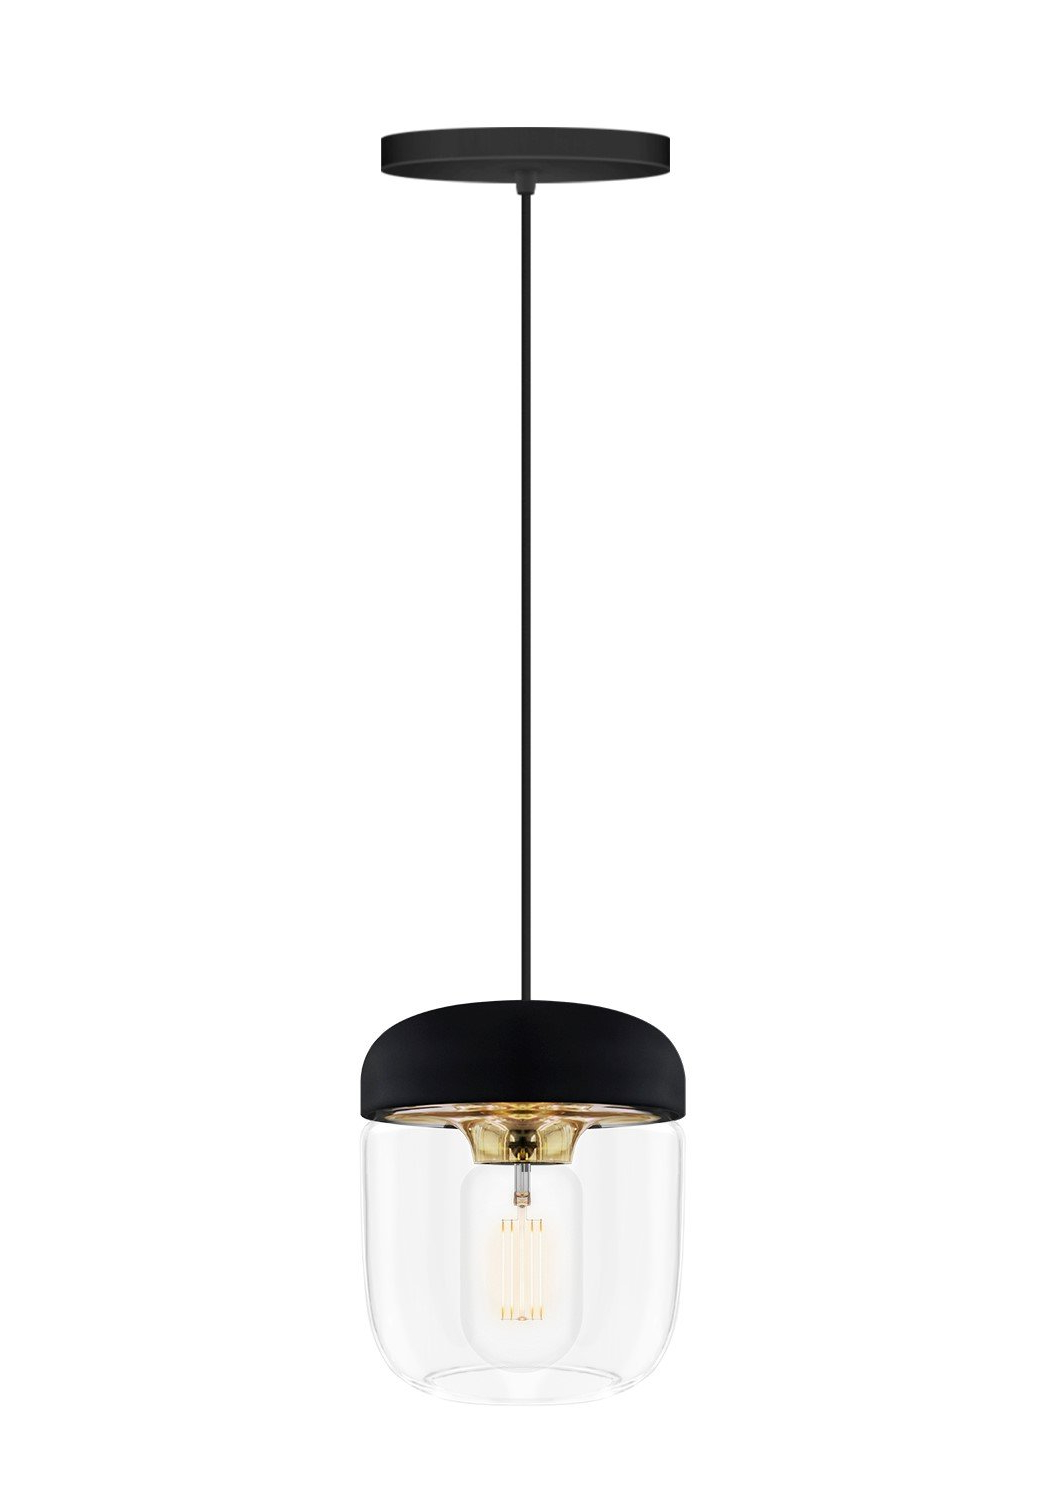 Preferred Burslem 3 Light Single Drum Pendants For Hisako 1 Light Bulb Pendant (View 15 of 20)